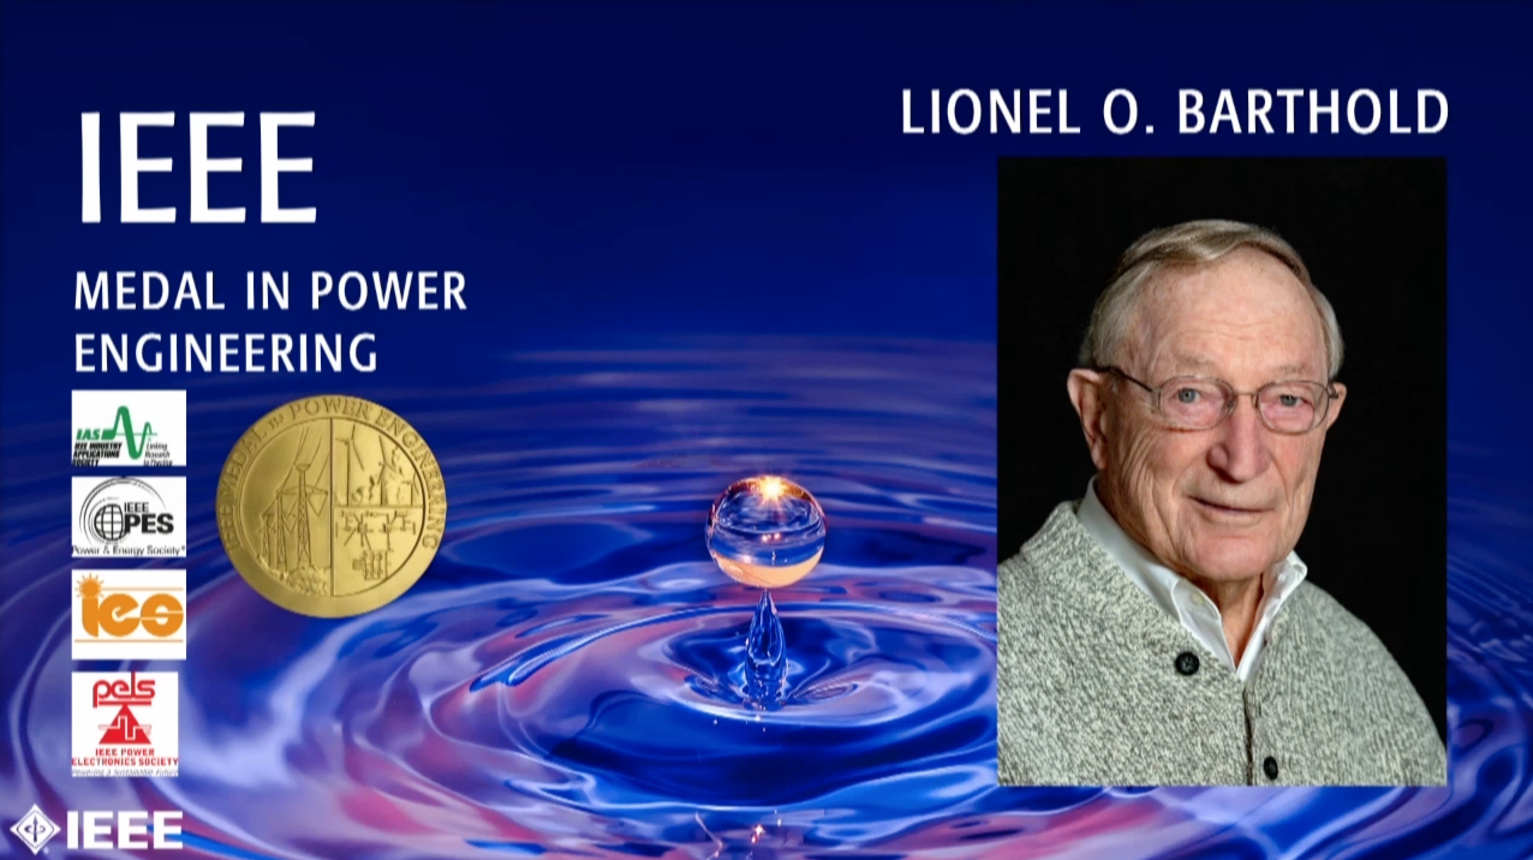 Lionel O. Barthold - IEEE Medal in Power Engineering, 2019 IEEE Honors Ceremony